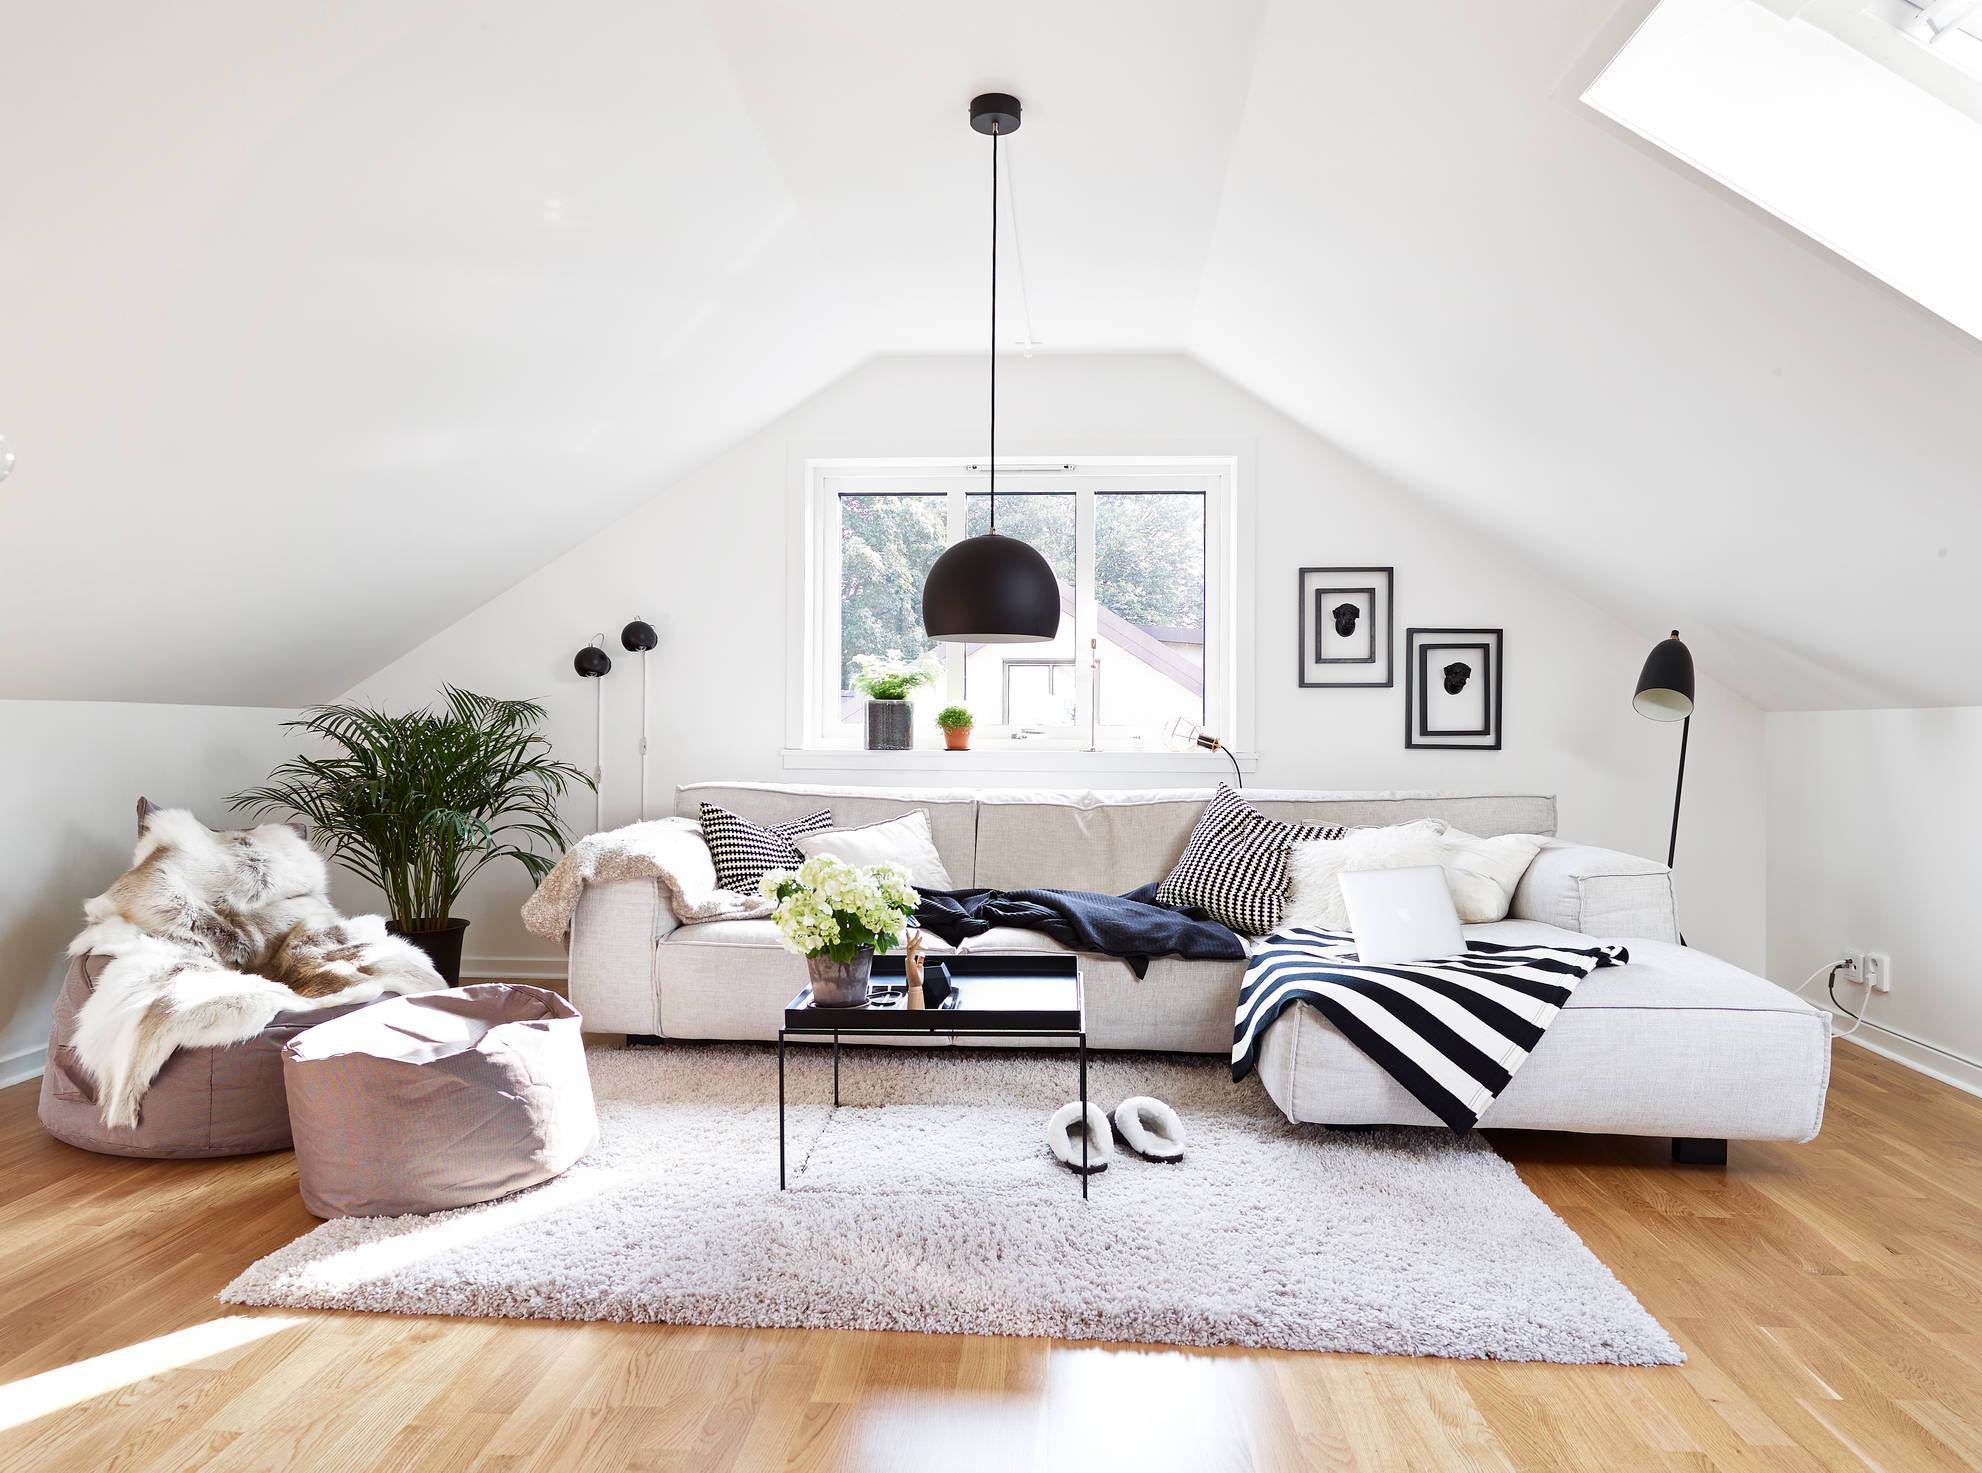 superb living room in home attic design | 18 Gorgeous Attic Living Room Designs That Everyone Need ...